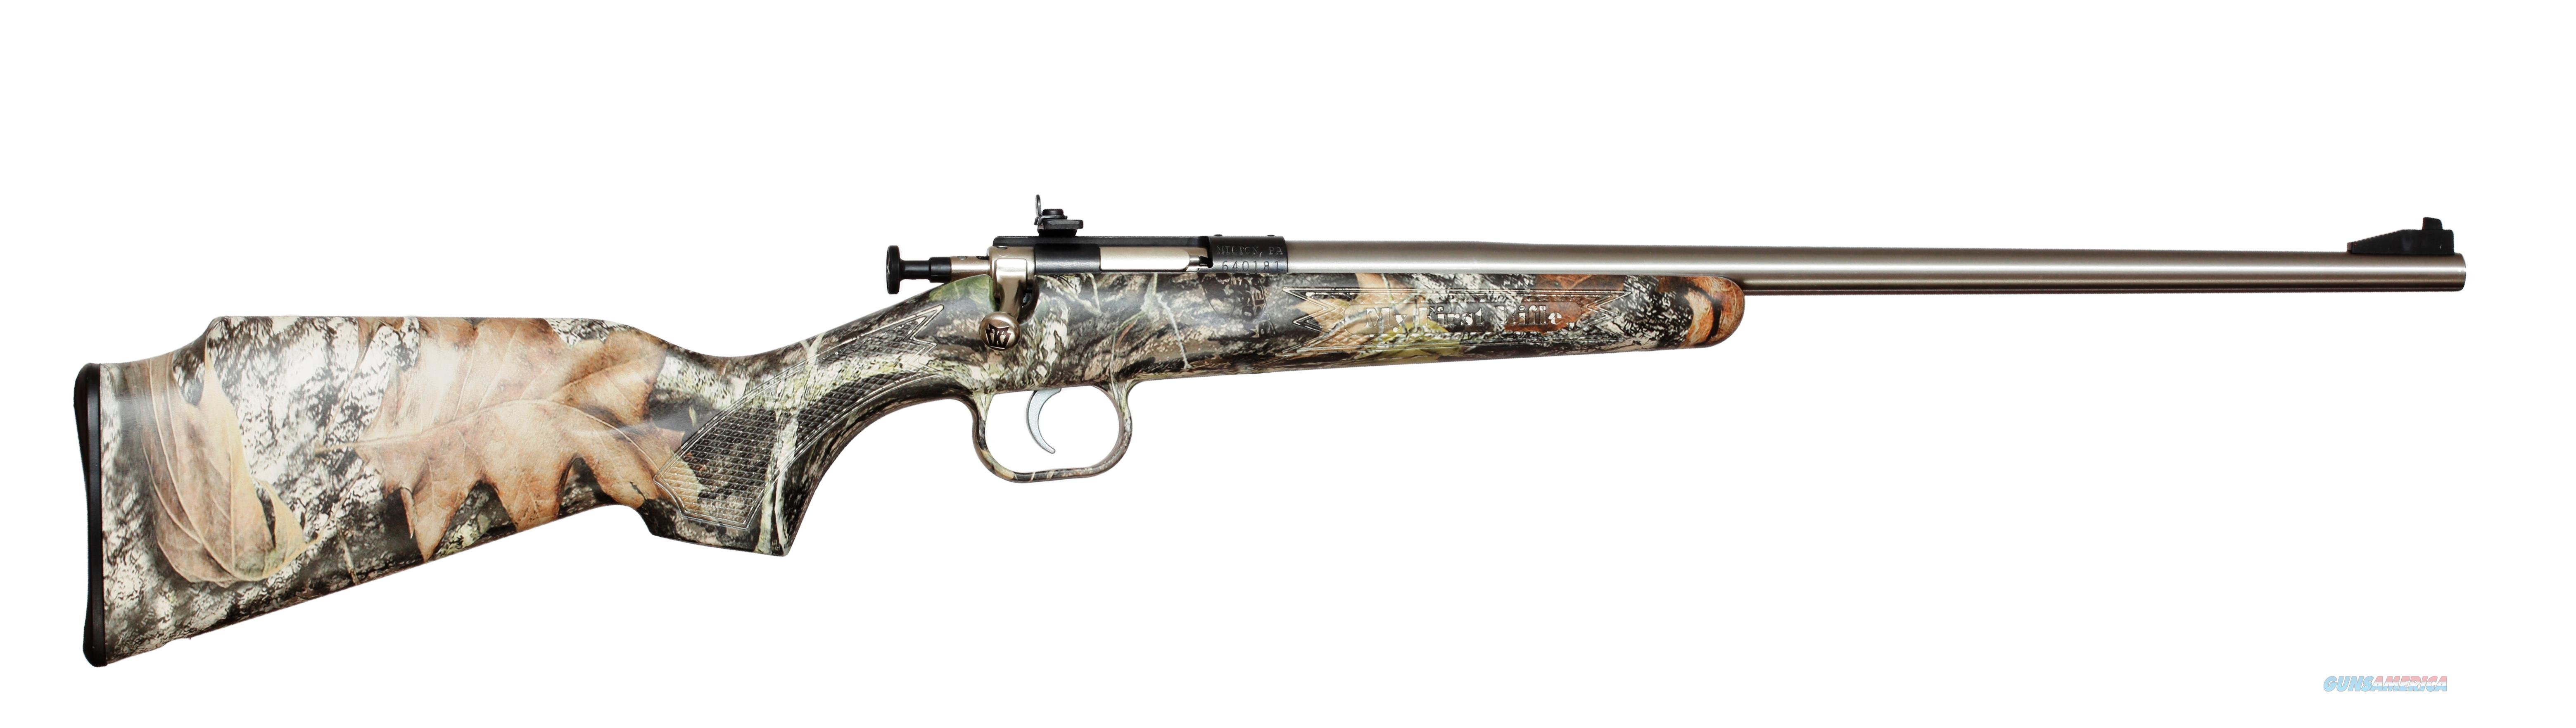 Keystone Sporting Arms CRICKETT 22LR SS/BREAK-UP CAMO MOSSY OAK BREAK-UP CAMO  Guns > Rifles > C Misc Rifles